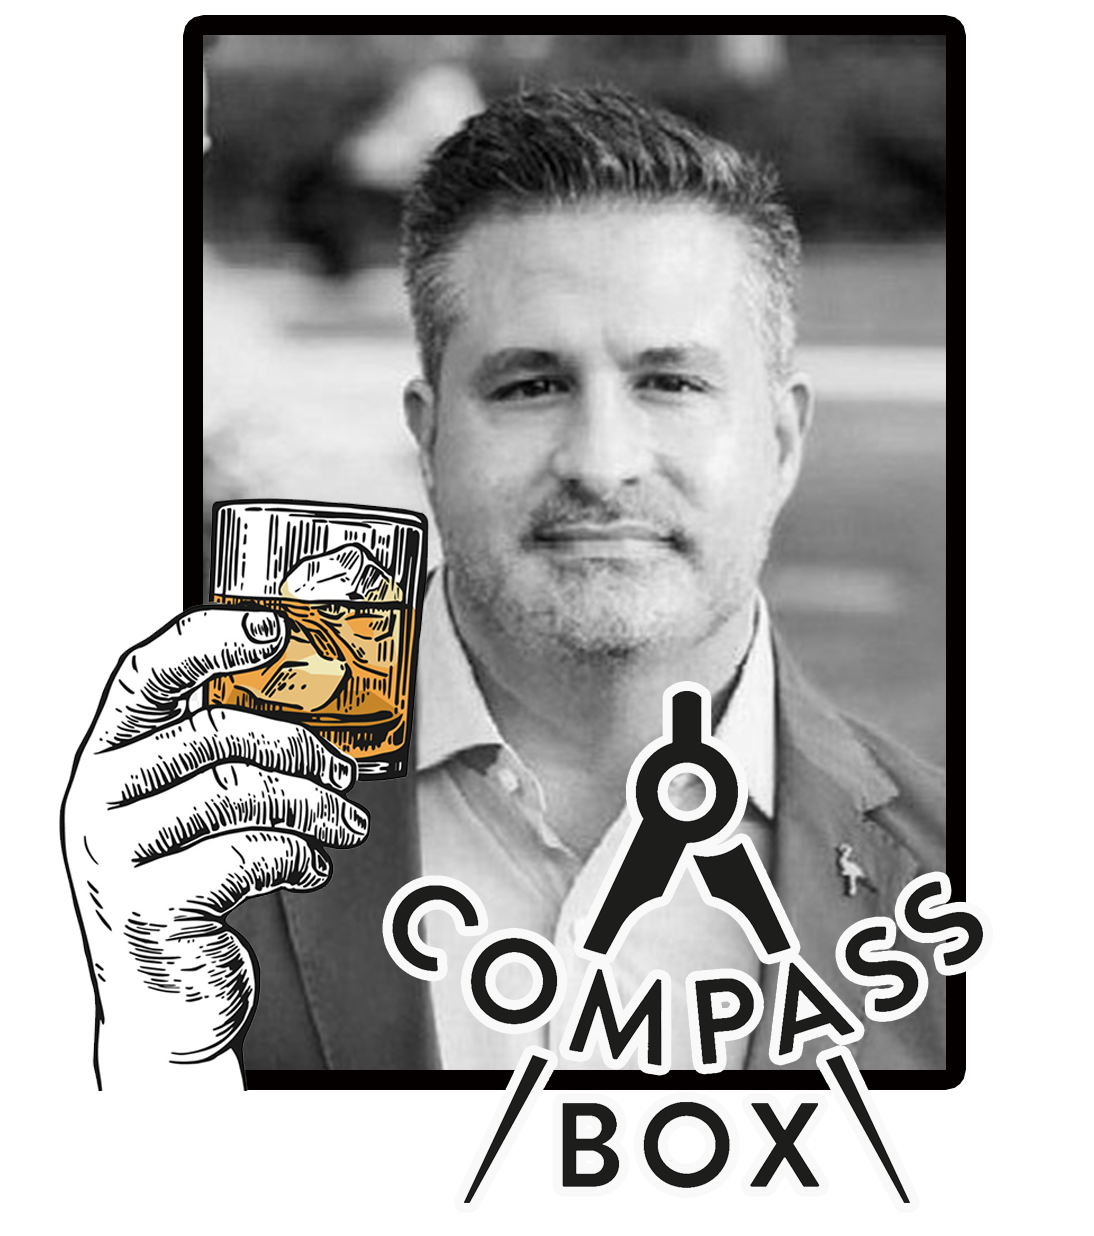 pete friello of compass box